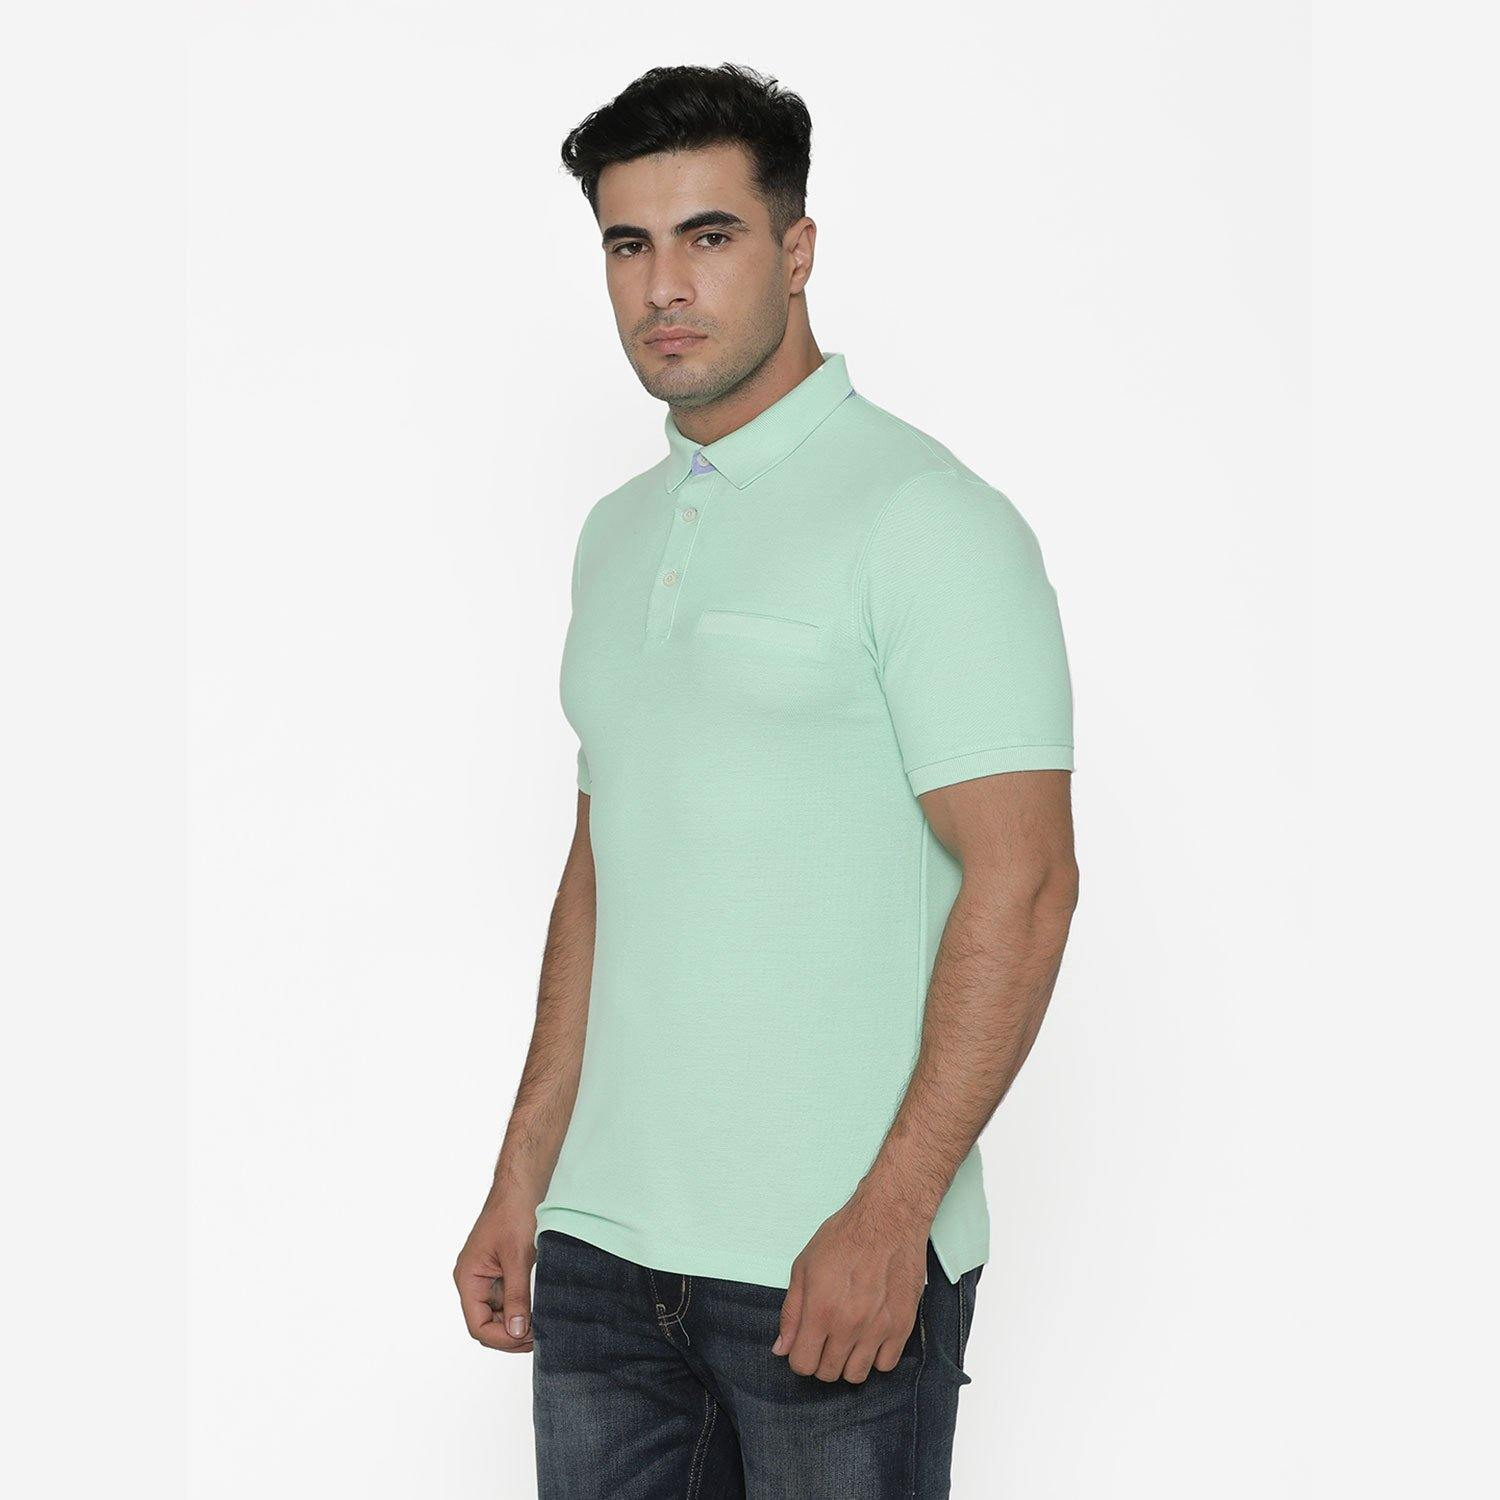 Men's Stylish Polo - Neck T - Shirt For Summer - Green Ash